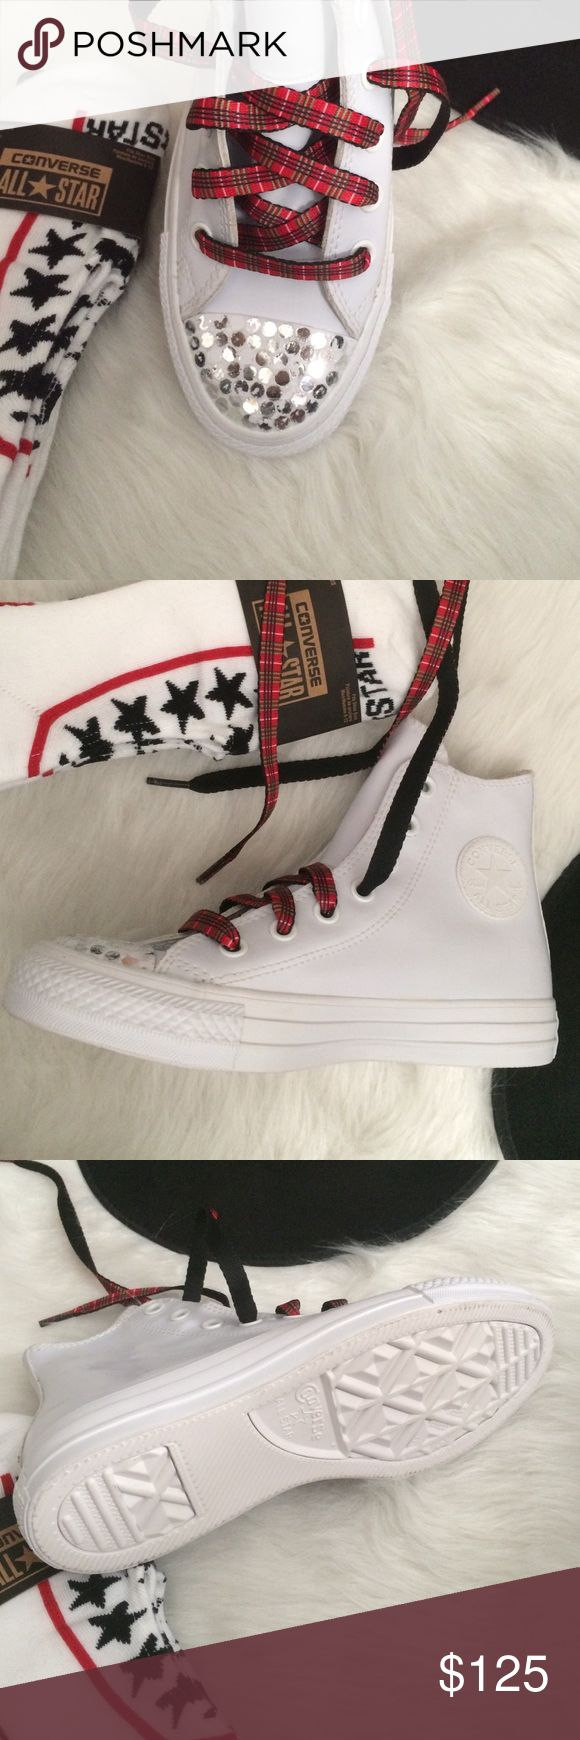 Converse customized all white women's size 6 Plaid laces added. Will come with all white laces as well. Customized toe. Shoes are a women's size 6. Rubber material. Hi tops new without box. Converse Shoes Sneakers